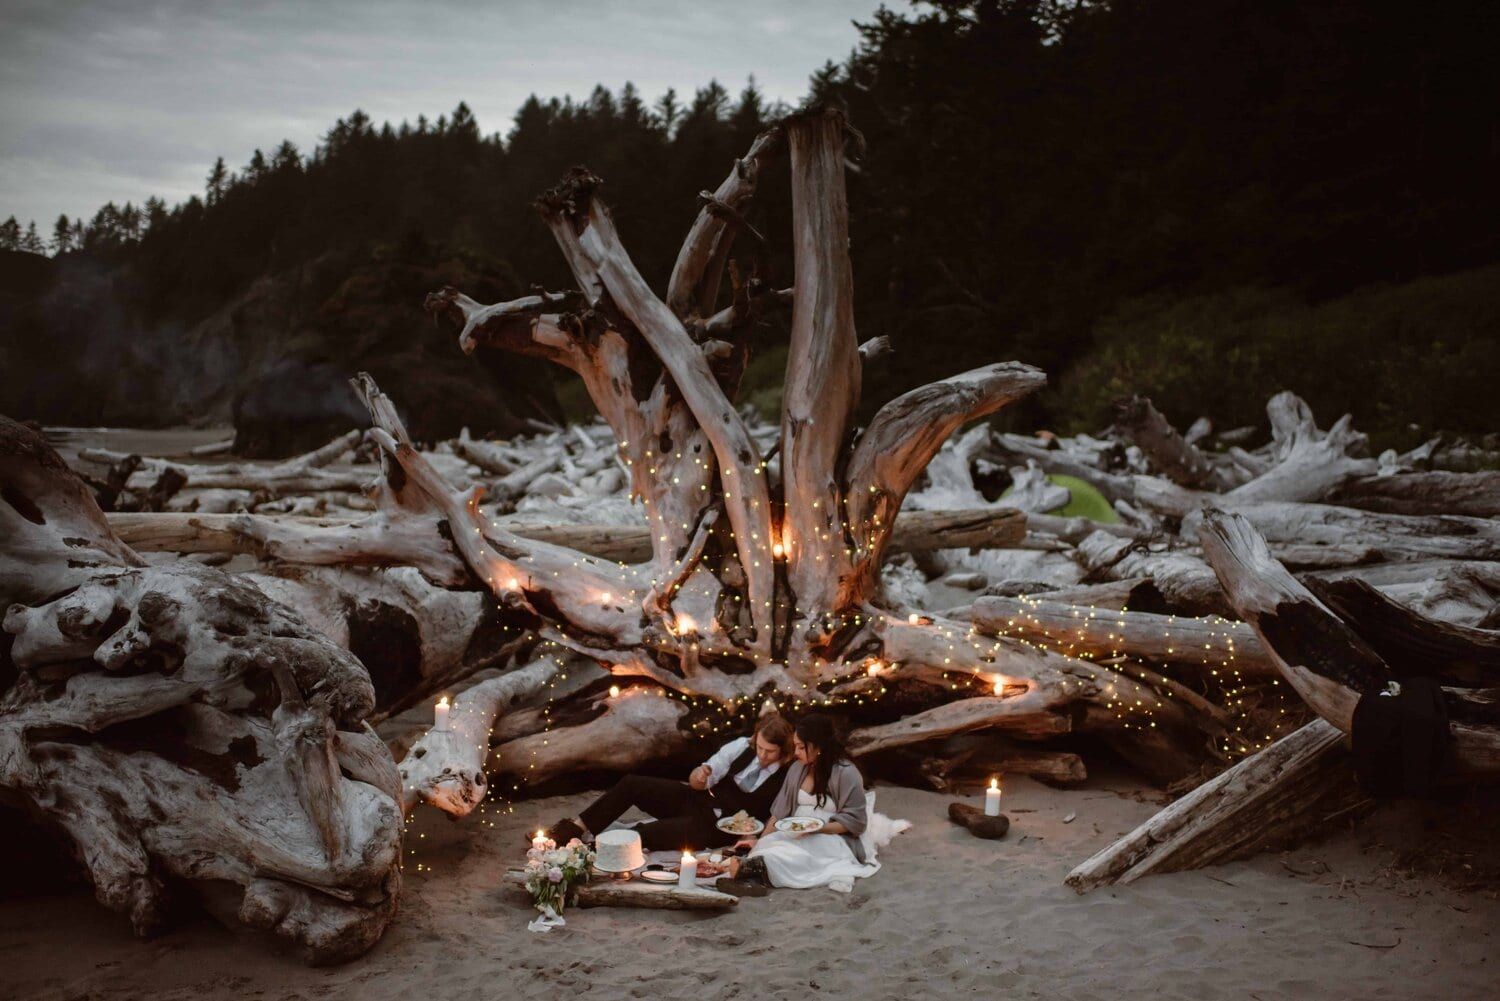 A bride and groom have a picnic at the beach during sunset.